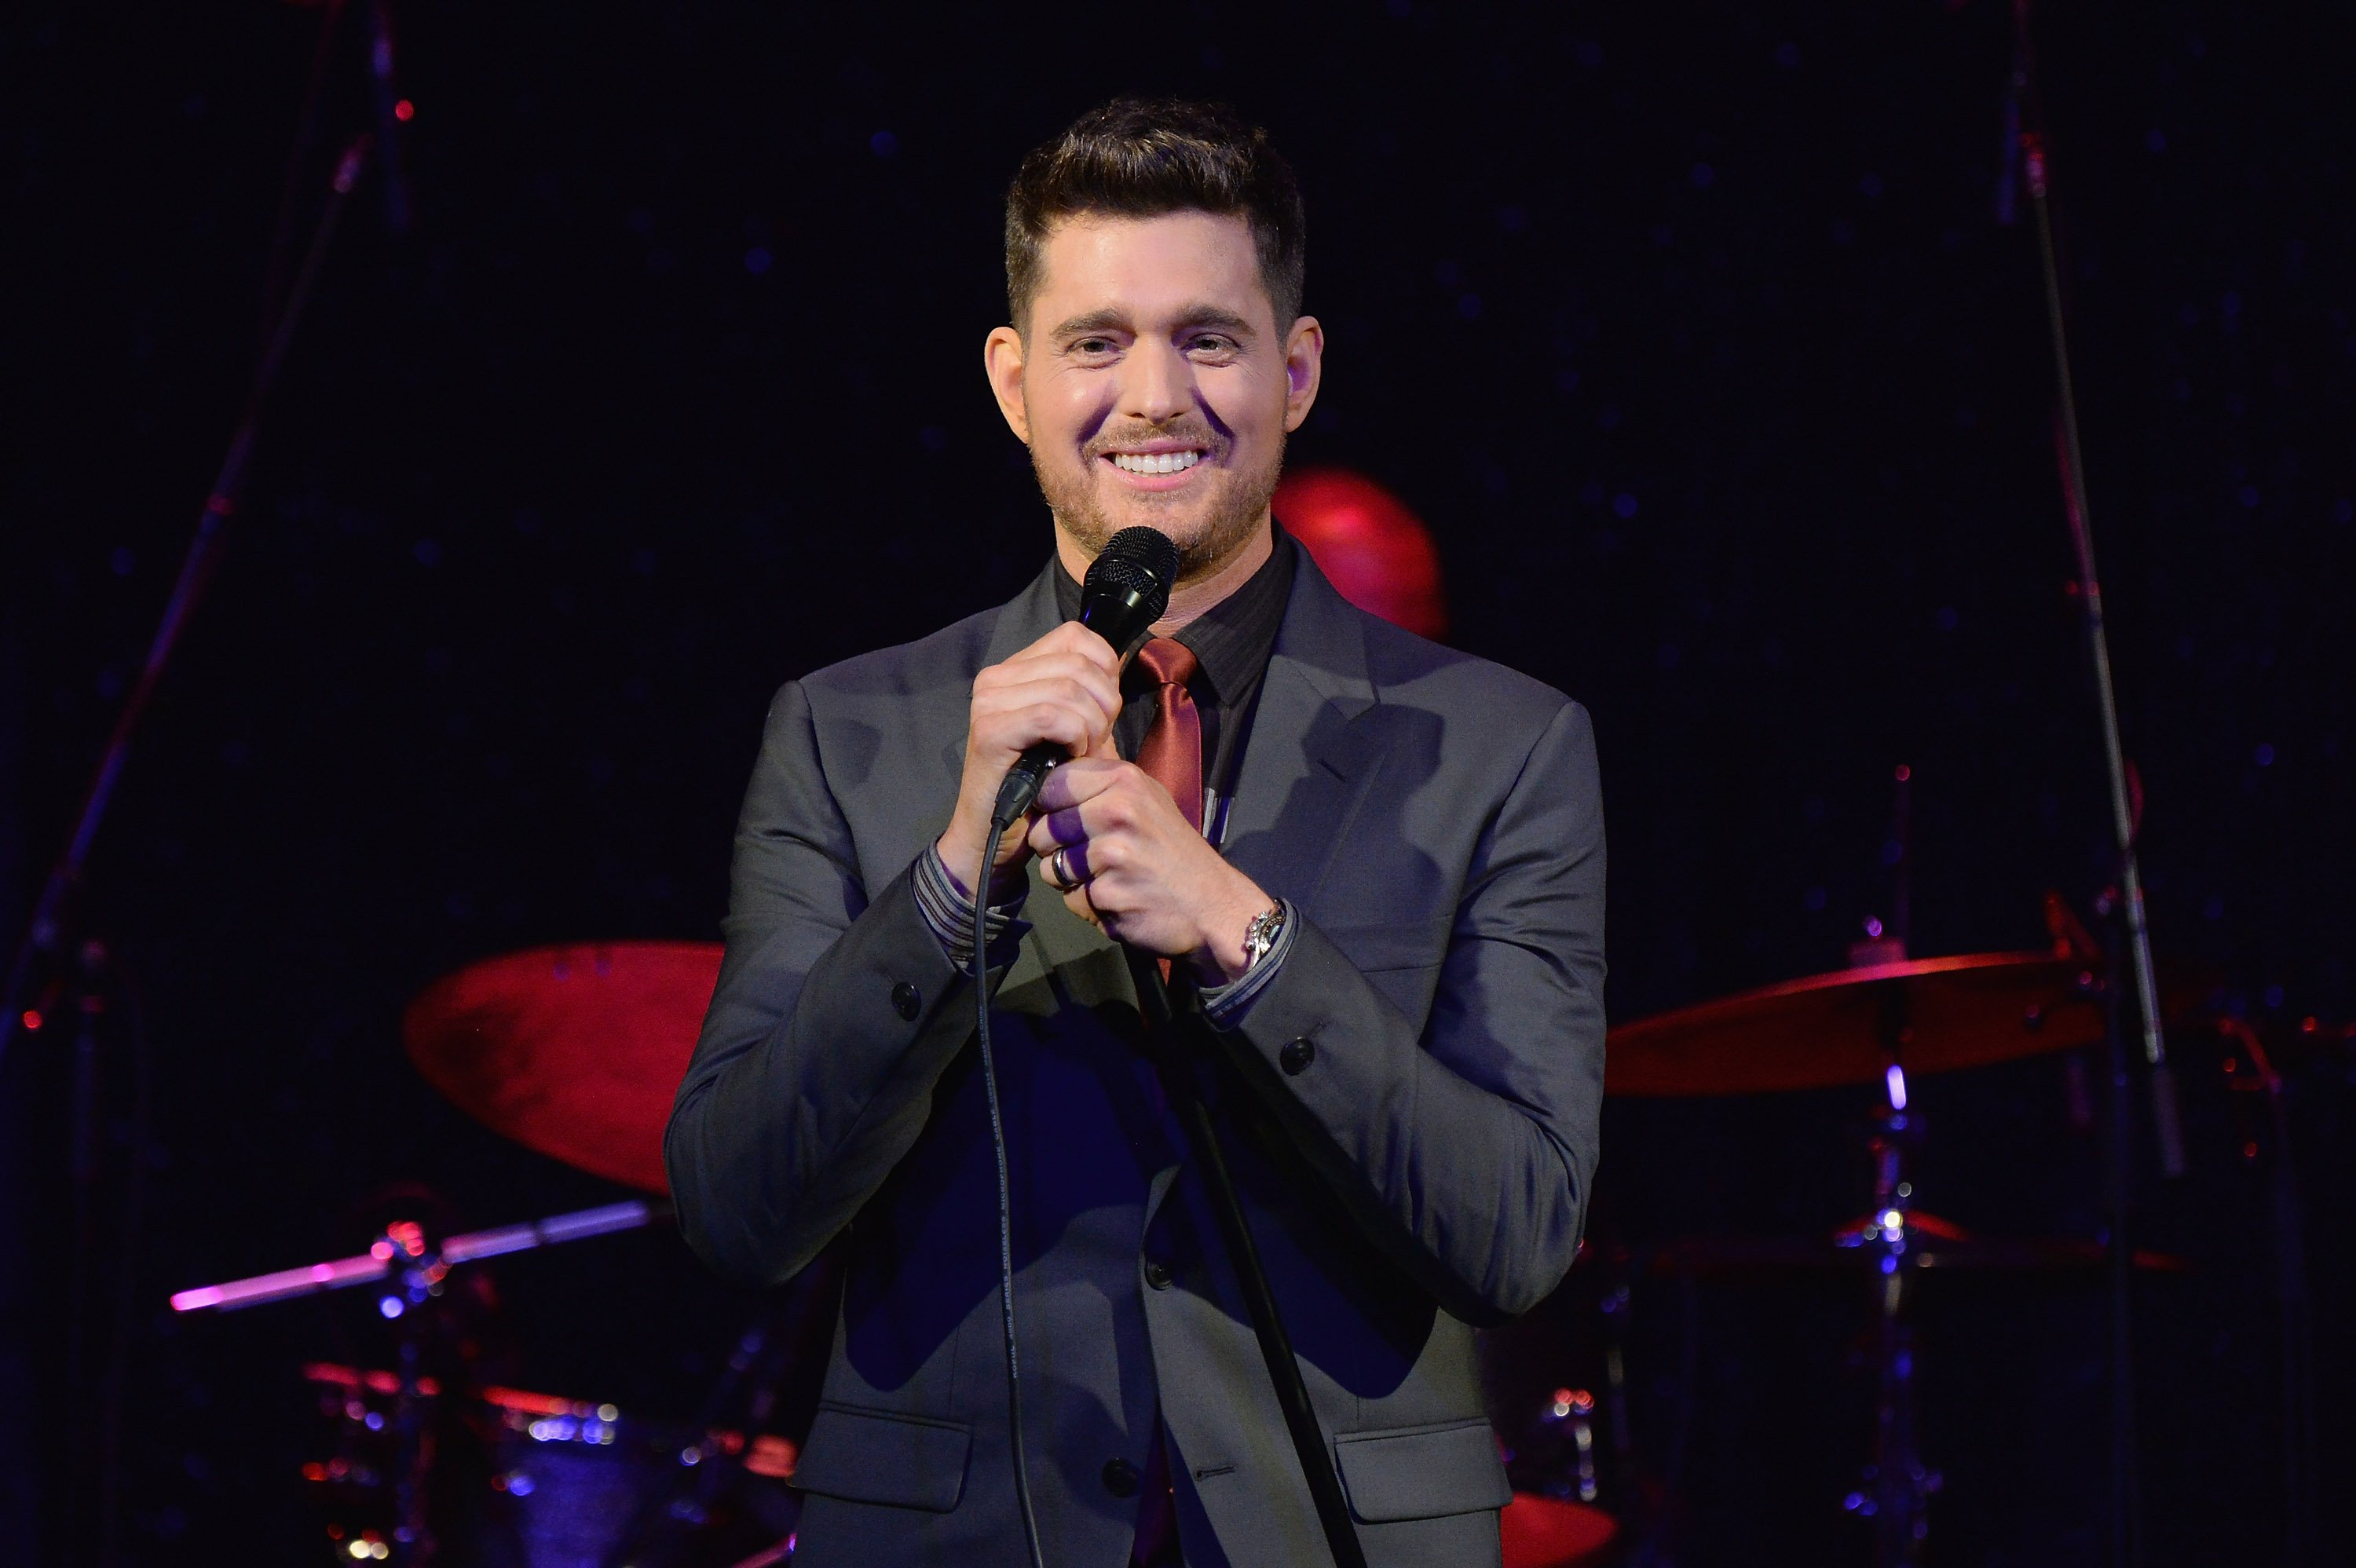 Michael Bublé in New York City on August 24, 2016. | Photo: Getty Images